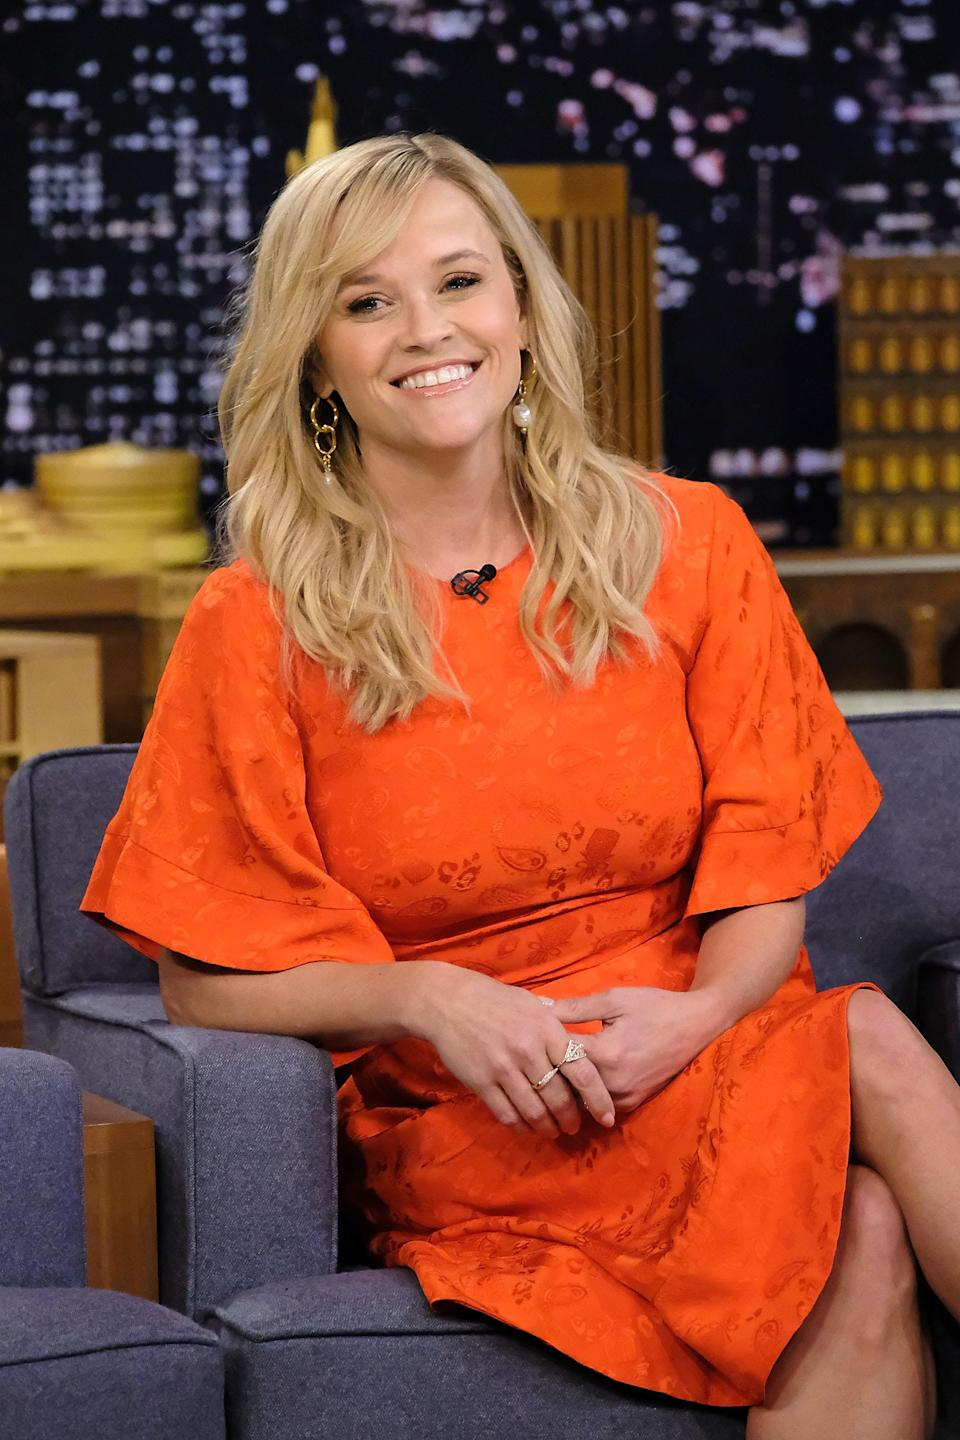 Instead of using her full birth name, Laura Jeanne Reese Witherspoon, actor and producer Reese Witherspoon decided to shorten it to the moniker we know her as today. Reese has a special connection for the star: It is her mother Betty's maiden name.